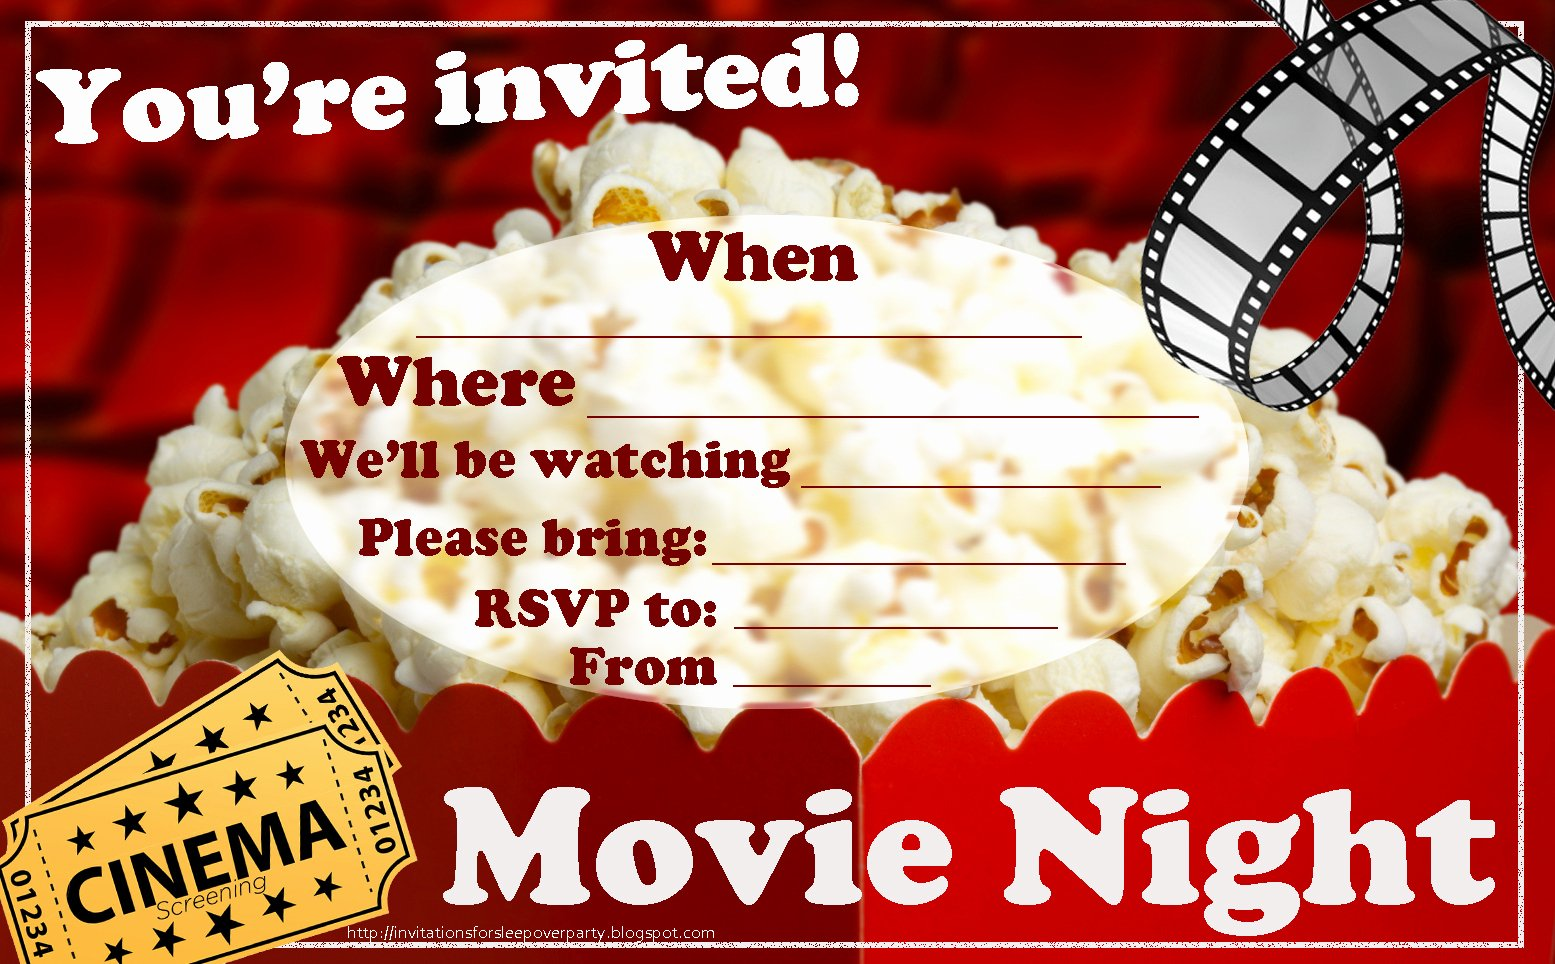 Date Night Invitation Template Beautiful Invitations for Sleepover Party